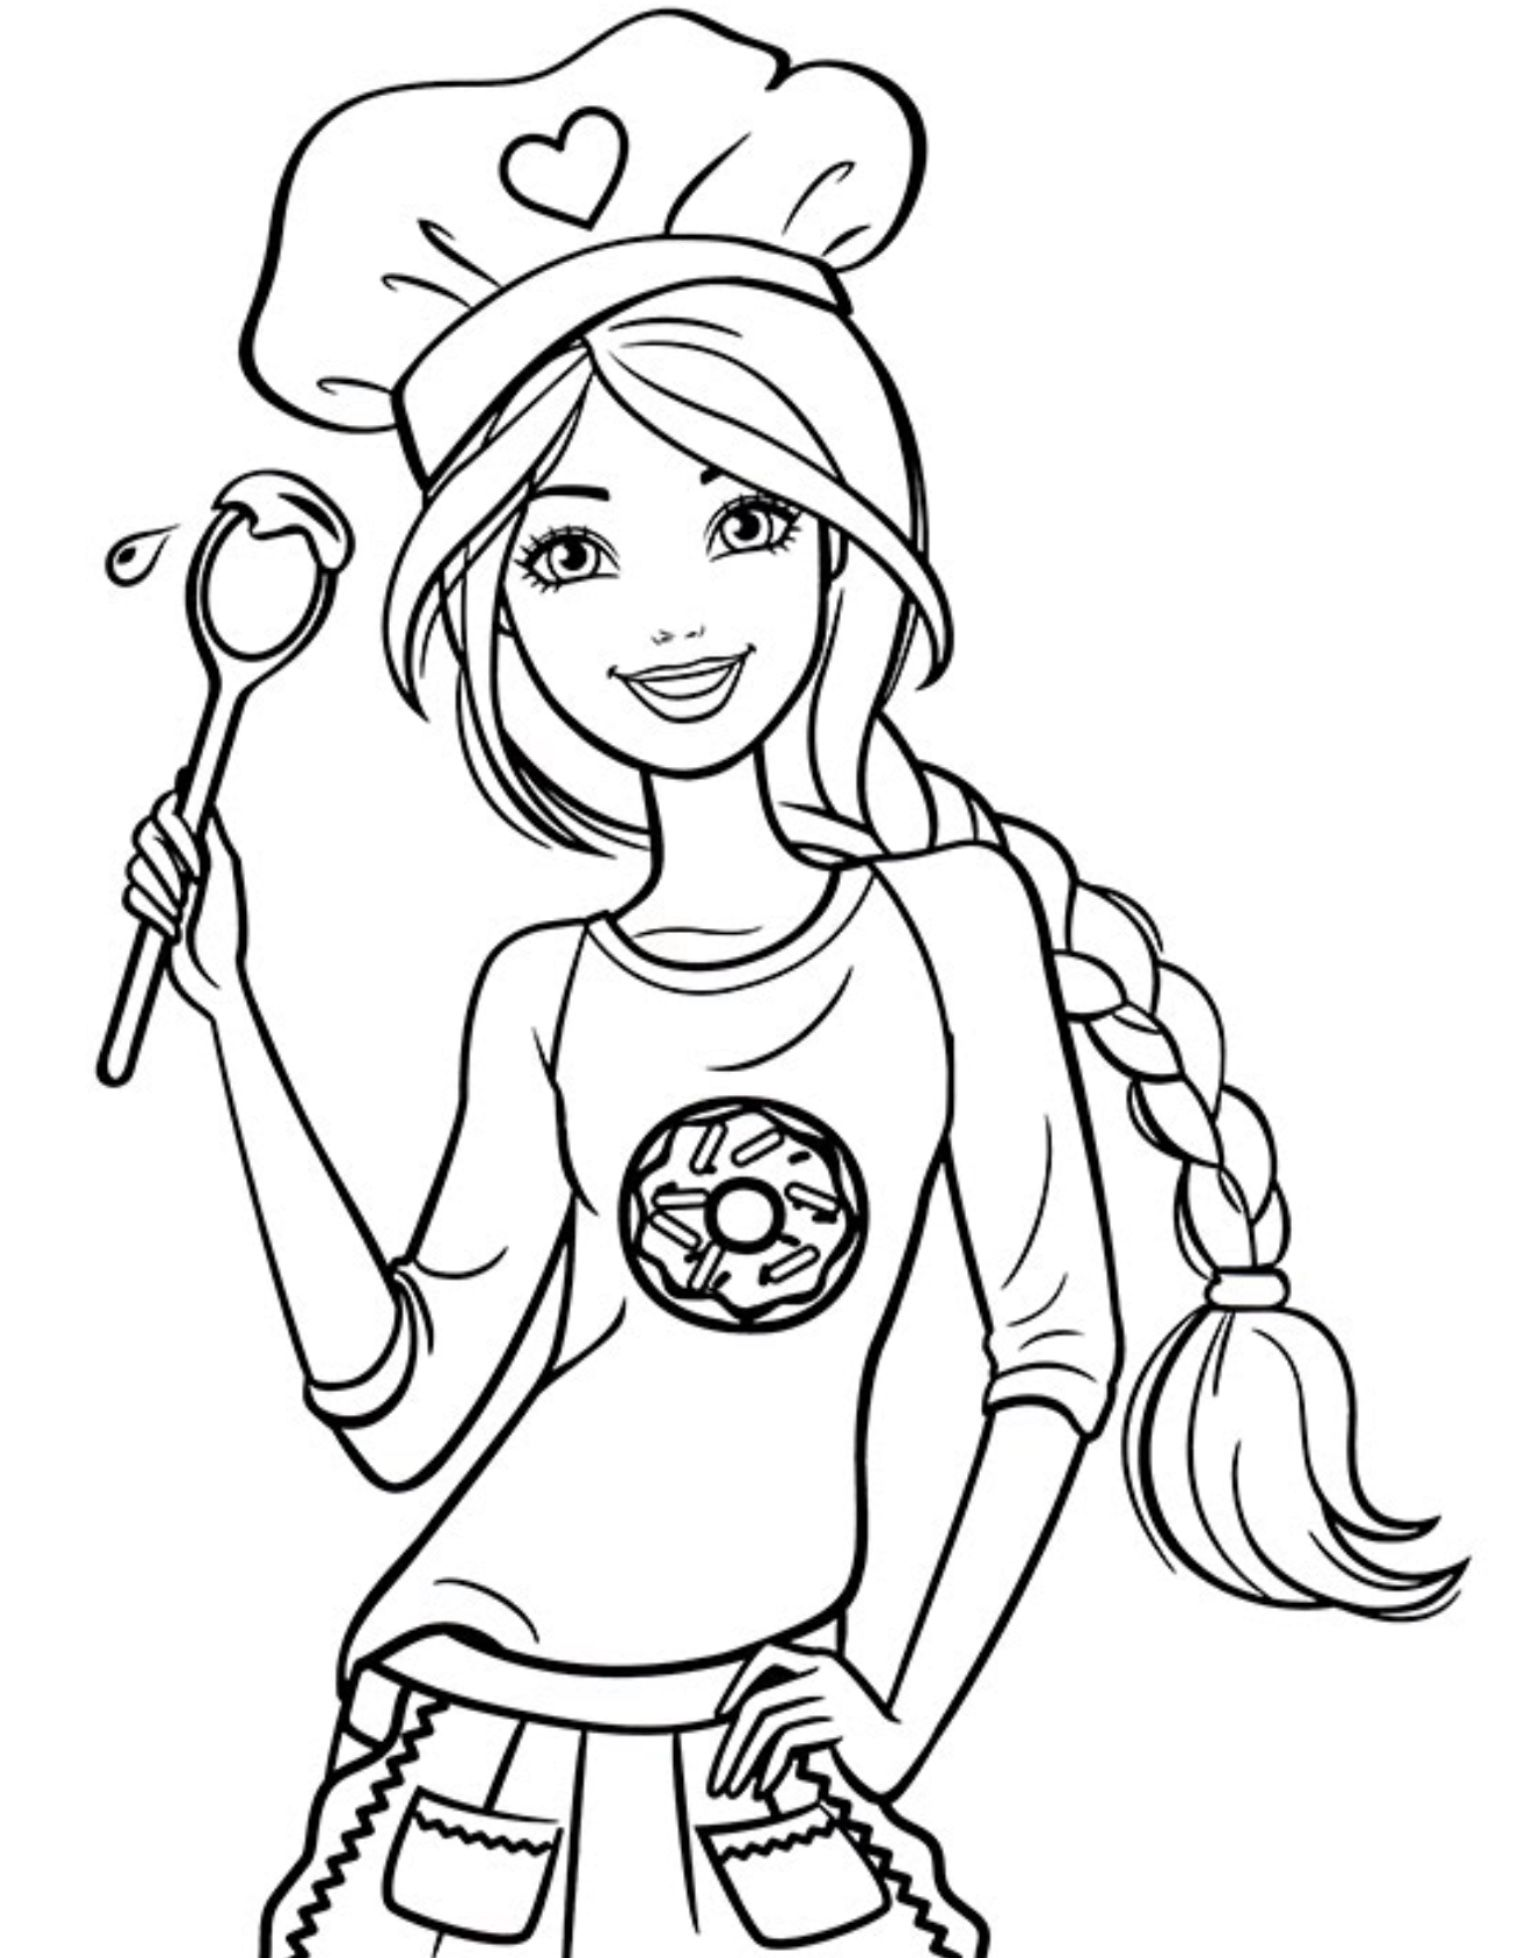 Chef Barbie Coloring Page Barbie Coloring Pages Princess Coloring Pages Barbie Drawing